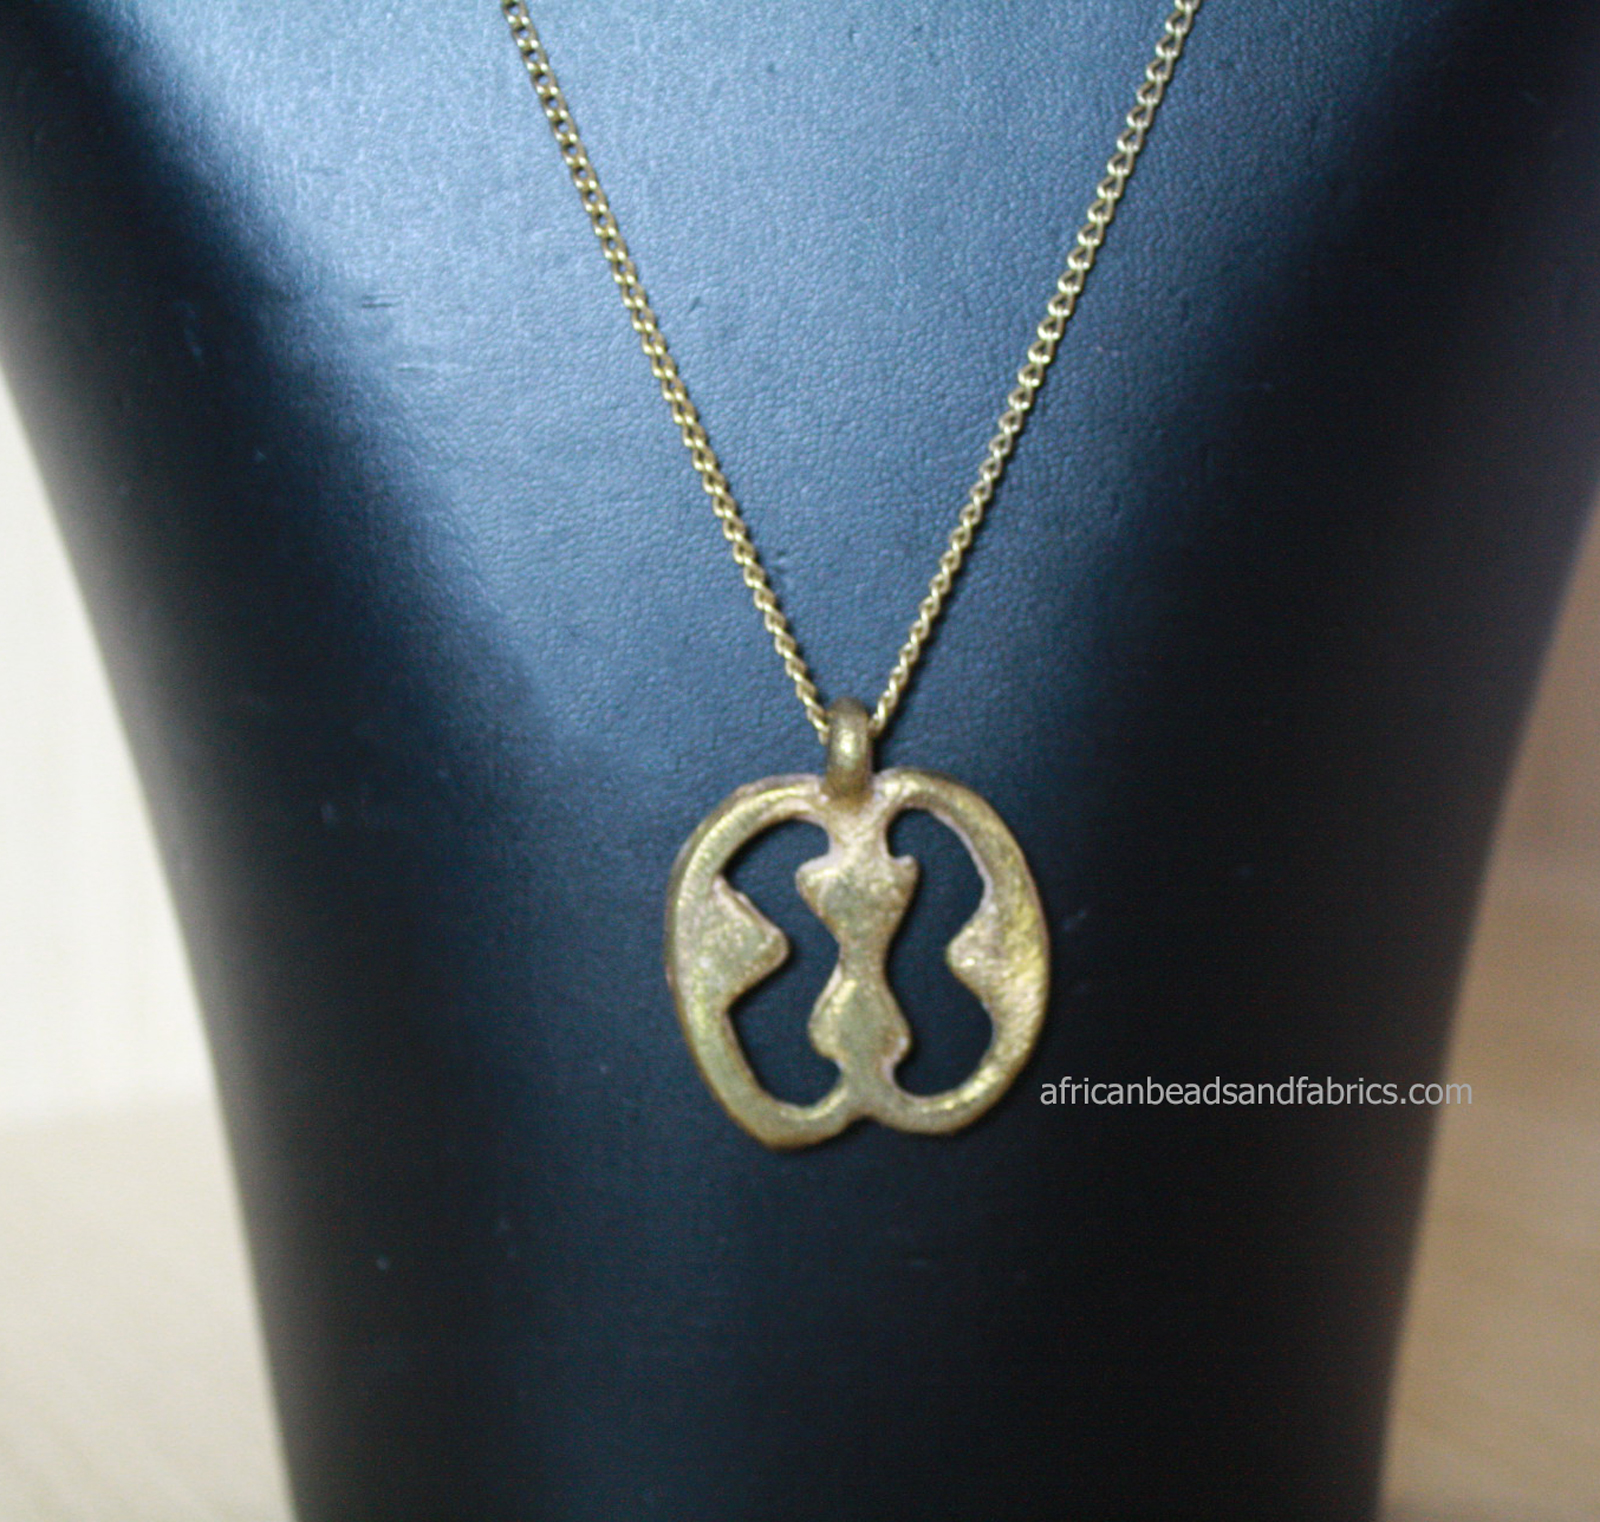 African-Jewellery-Brass-Adinkra-Pendant-on-Vintage-Curb-Human-Relations-watermarked